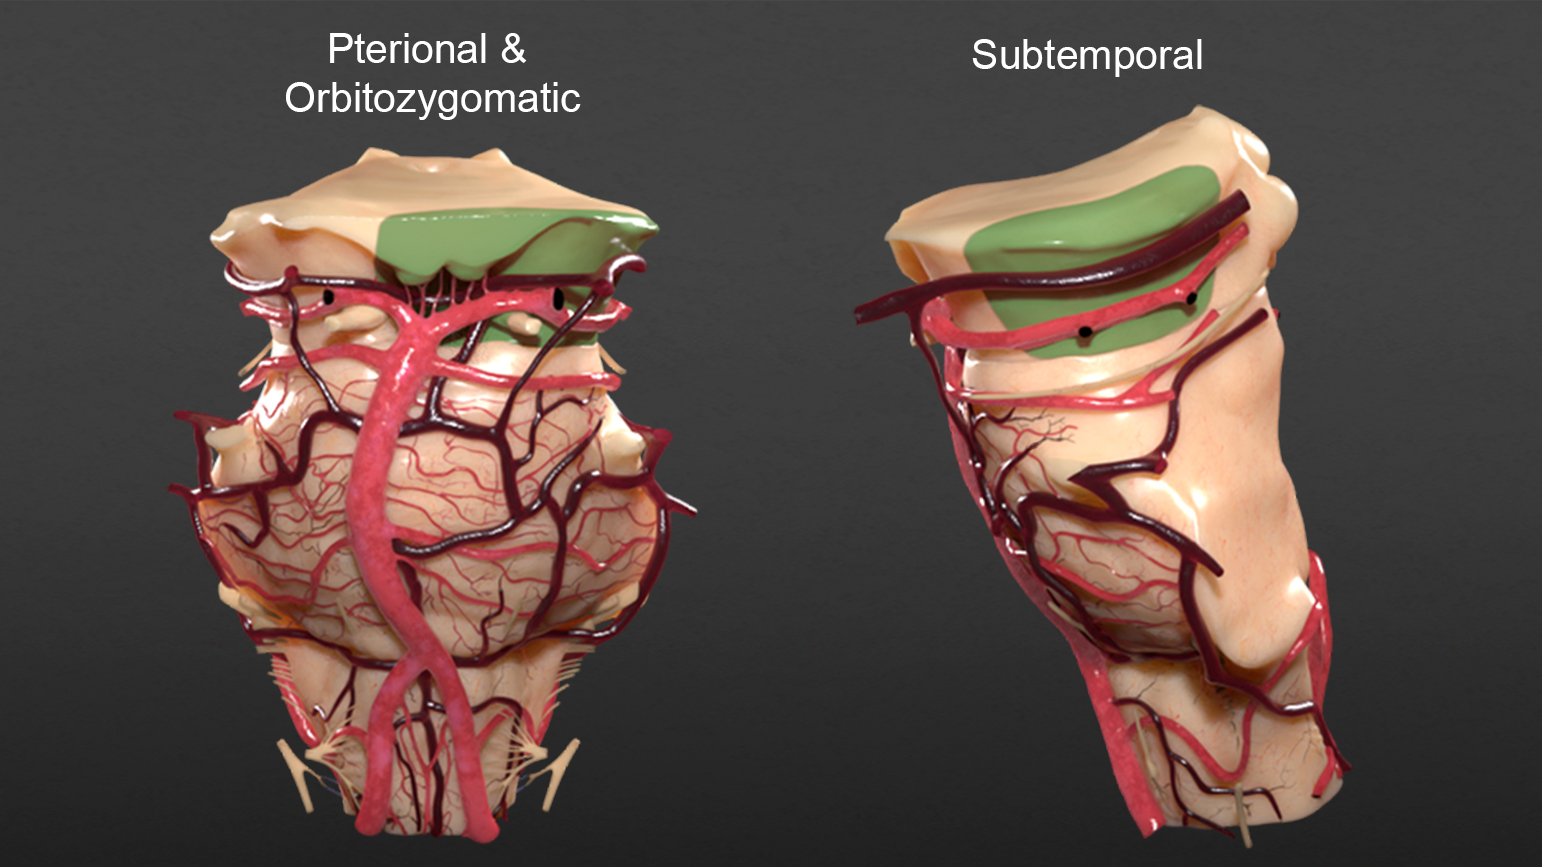 Figure 7:  The areas of exposure (green) for the pterional, orbitozygomatic, and subtemporal cranial approaches are illustrated.